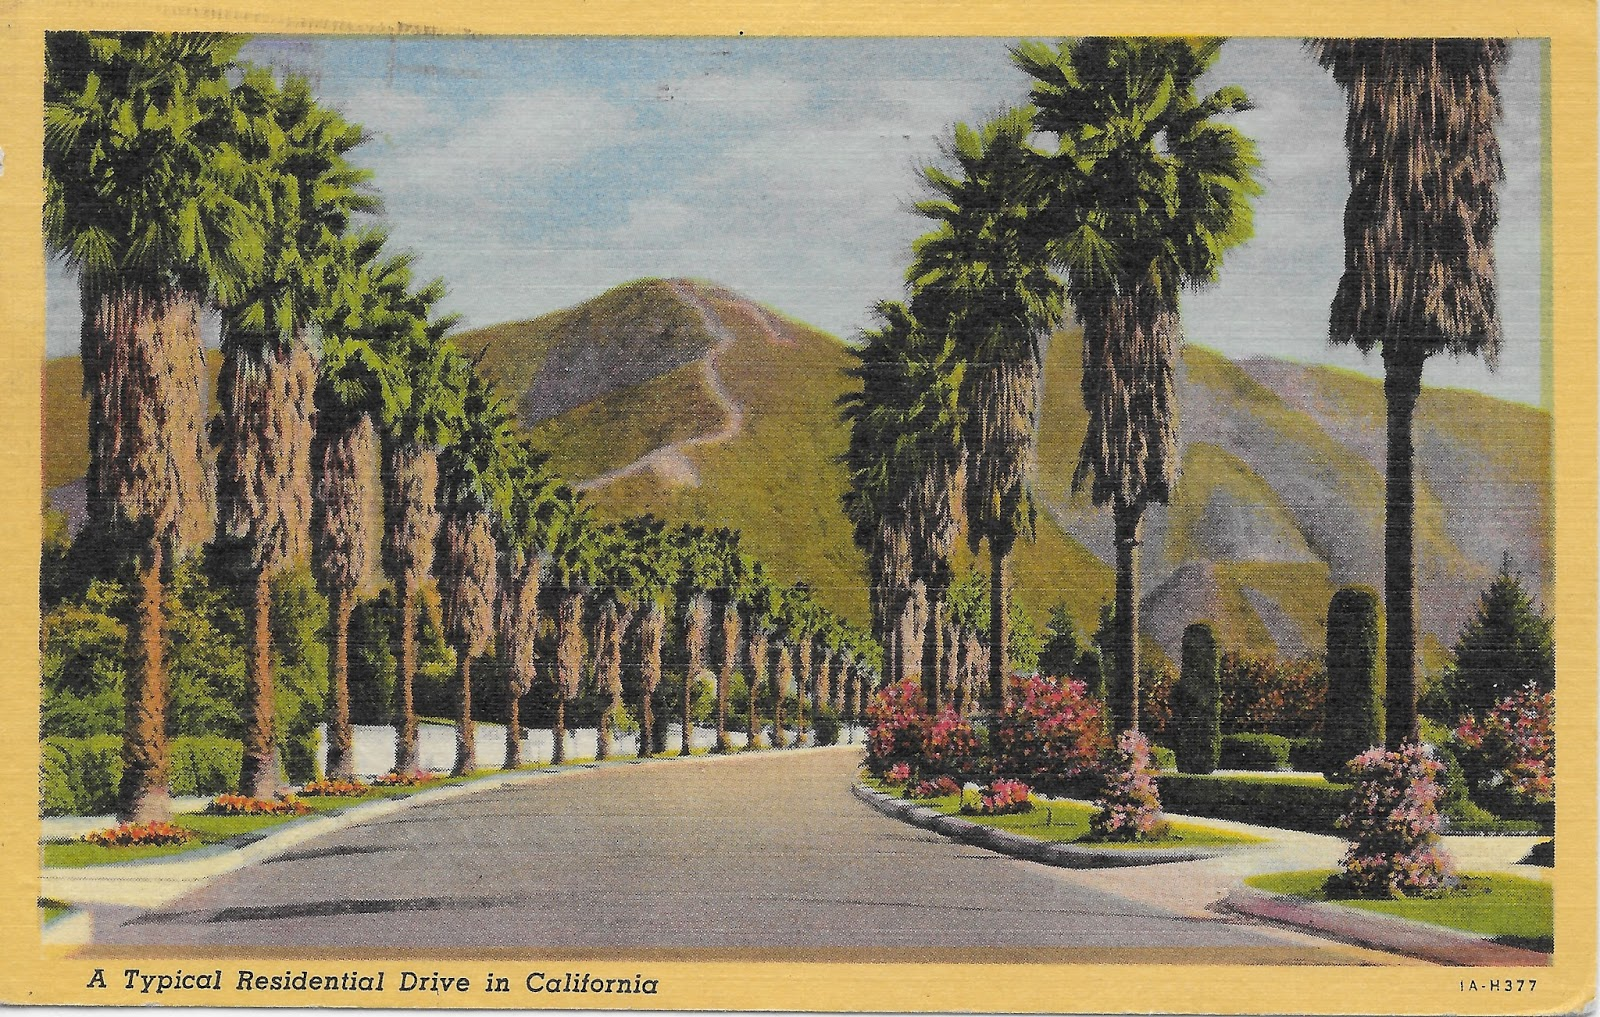 Retiring Guy's Digest: Greetings from Southern California